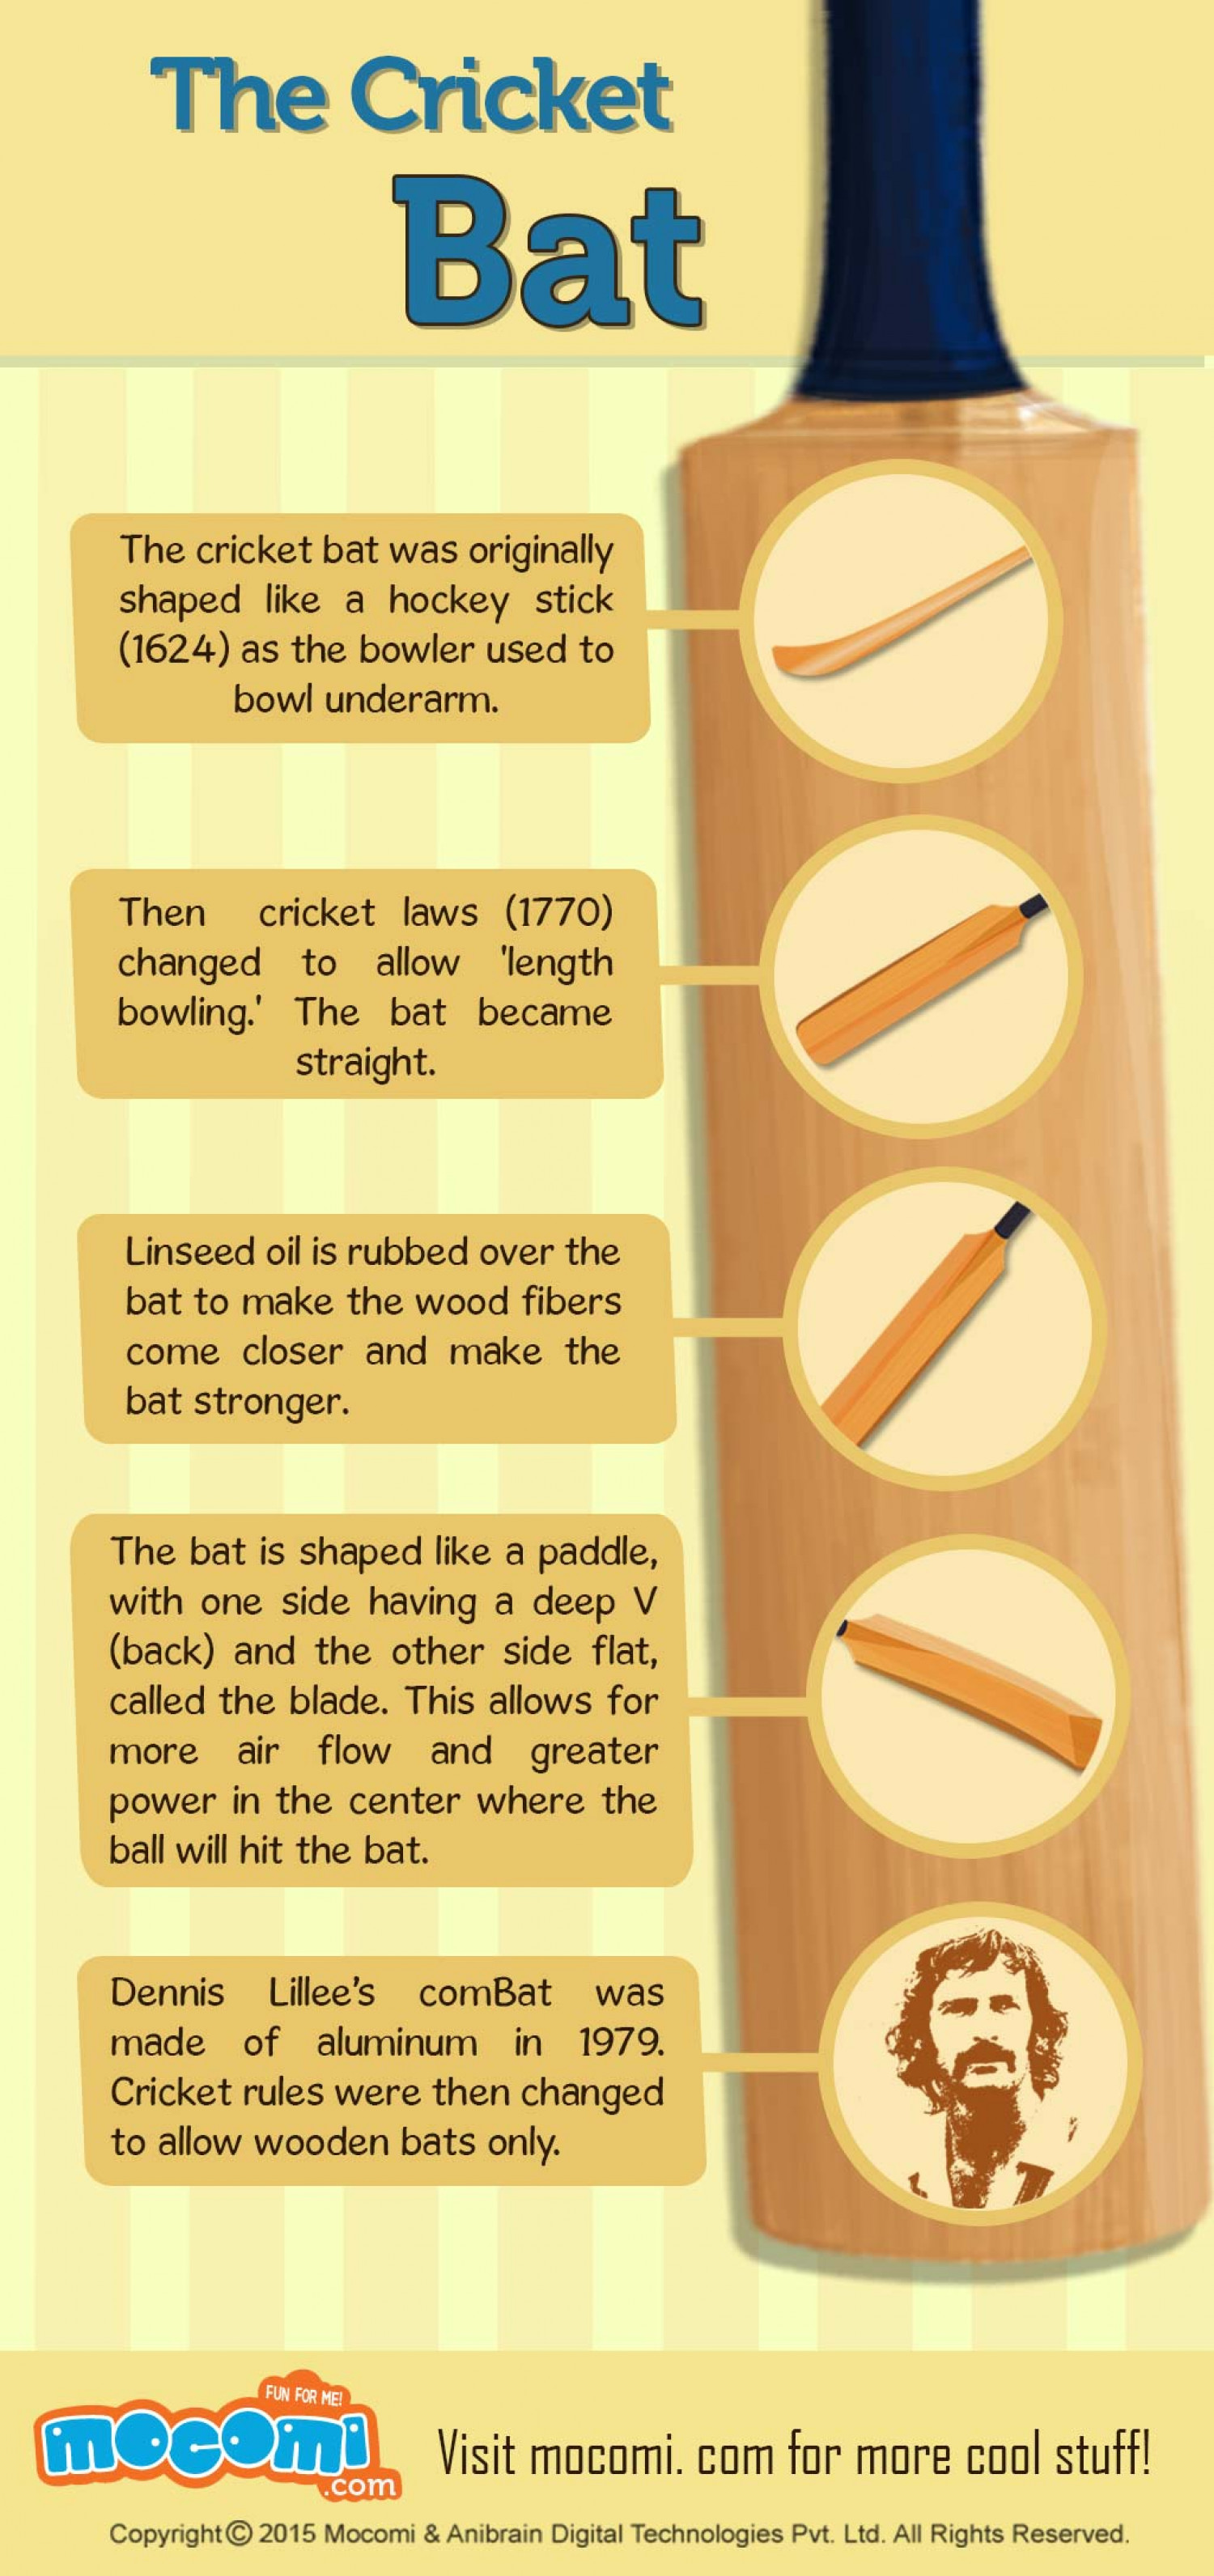 The Cricket Bat Facts Infographic